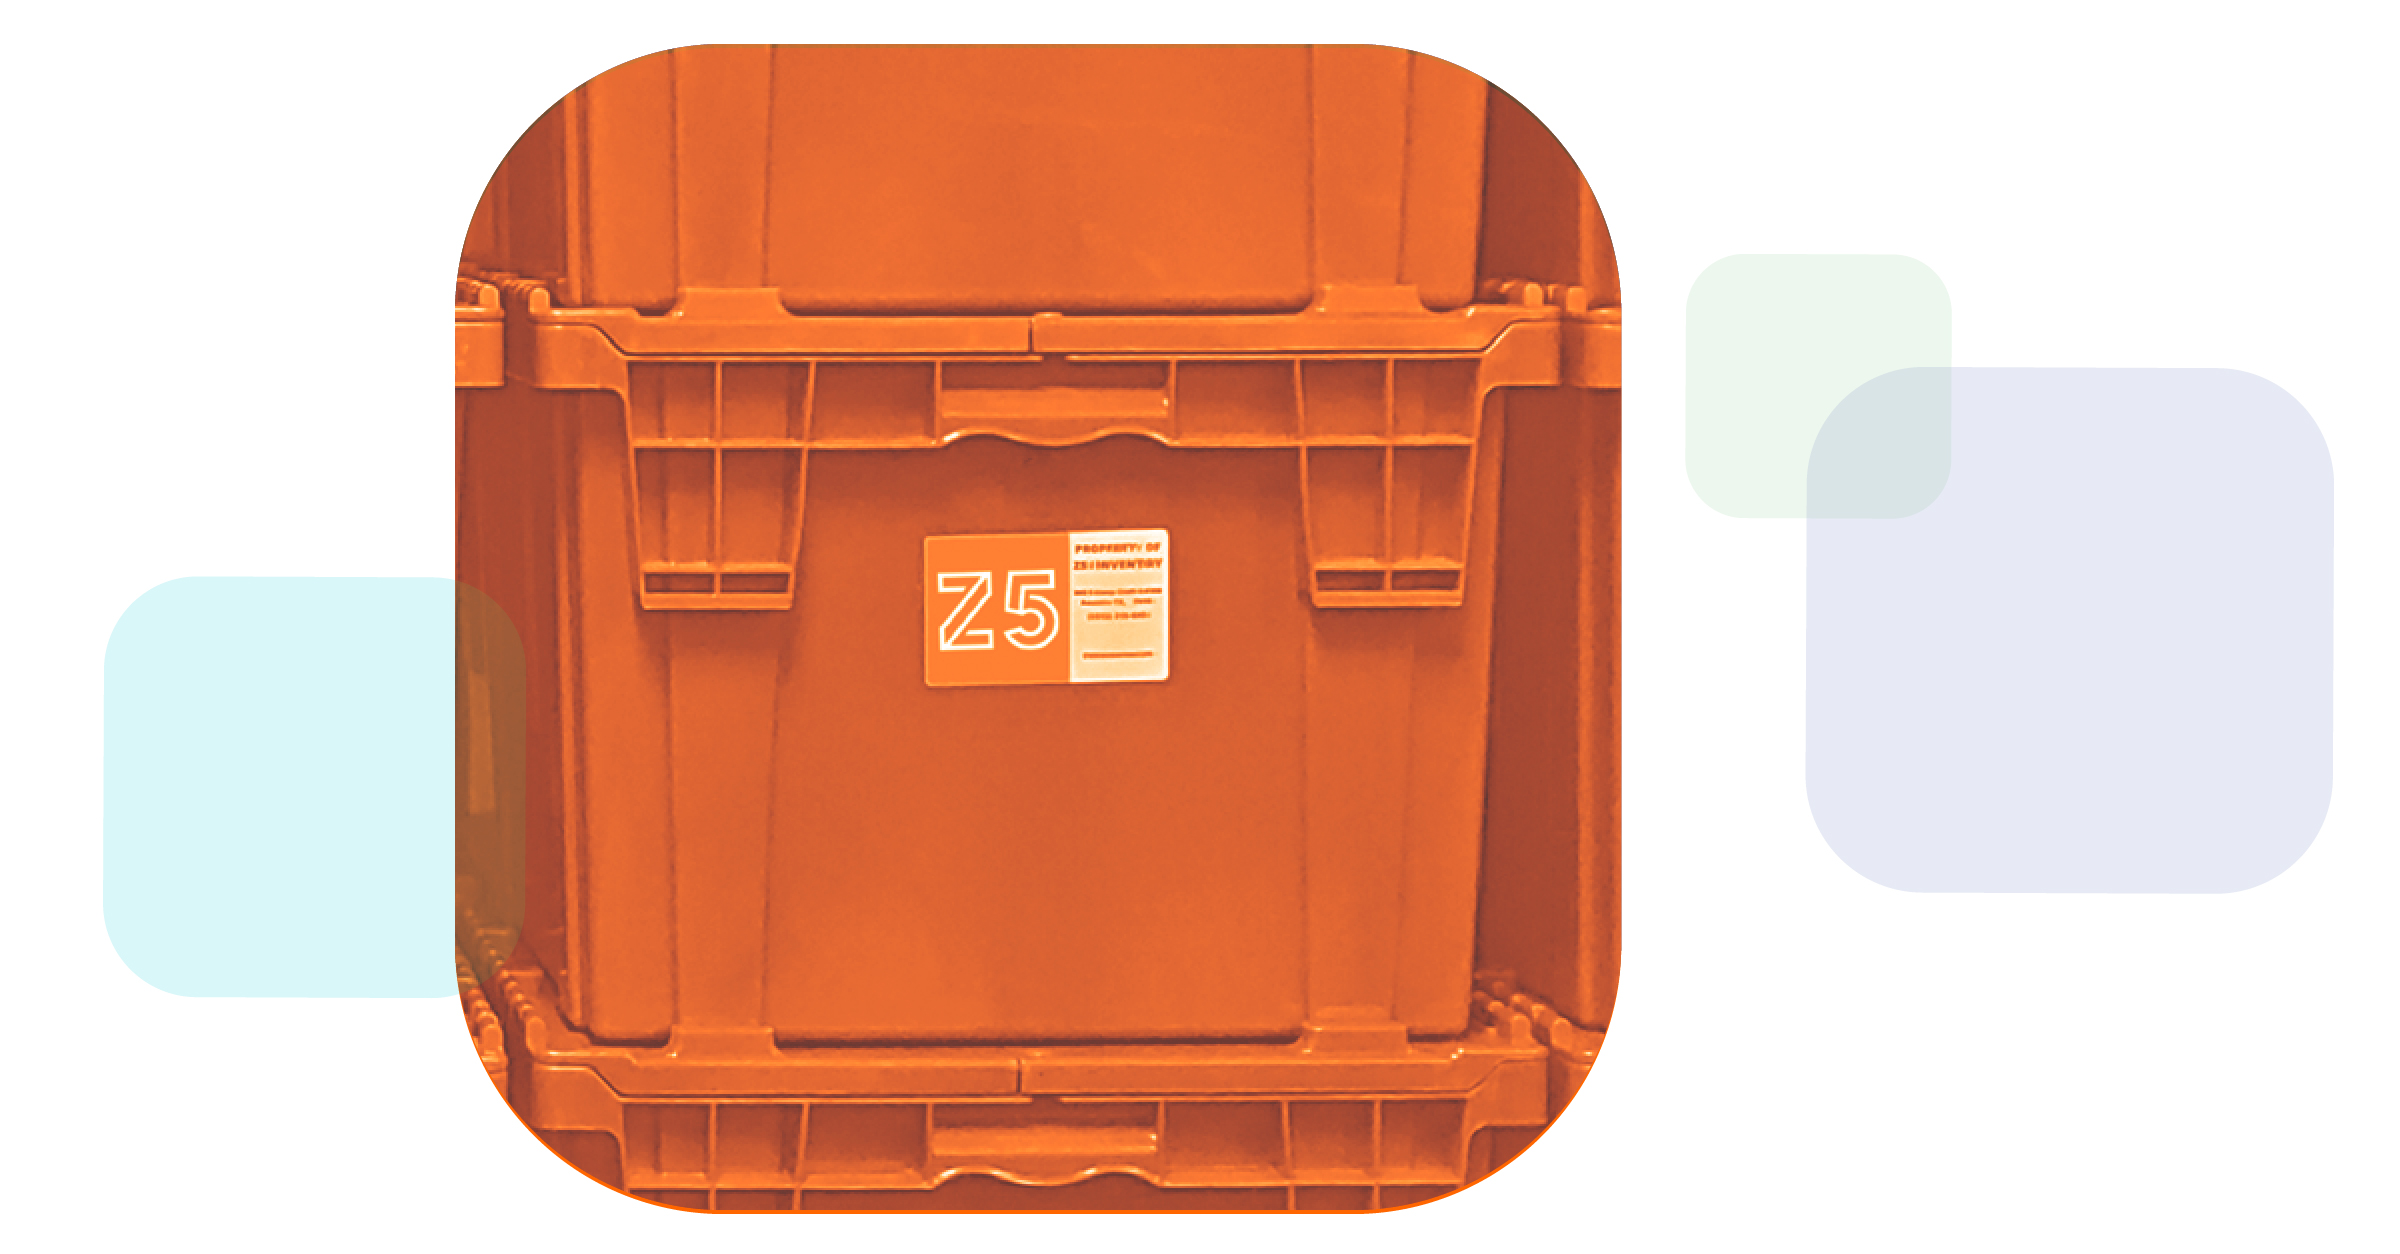 Z5 Reallocate image with totes filled with medical supplies